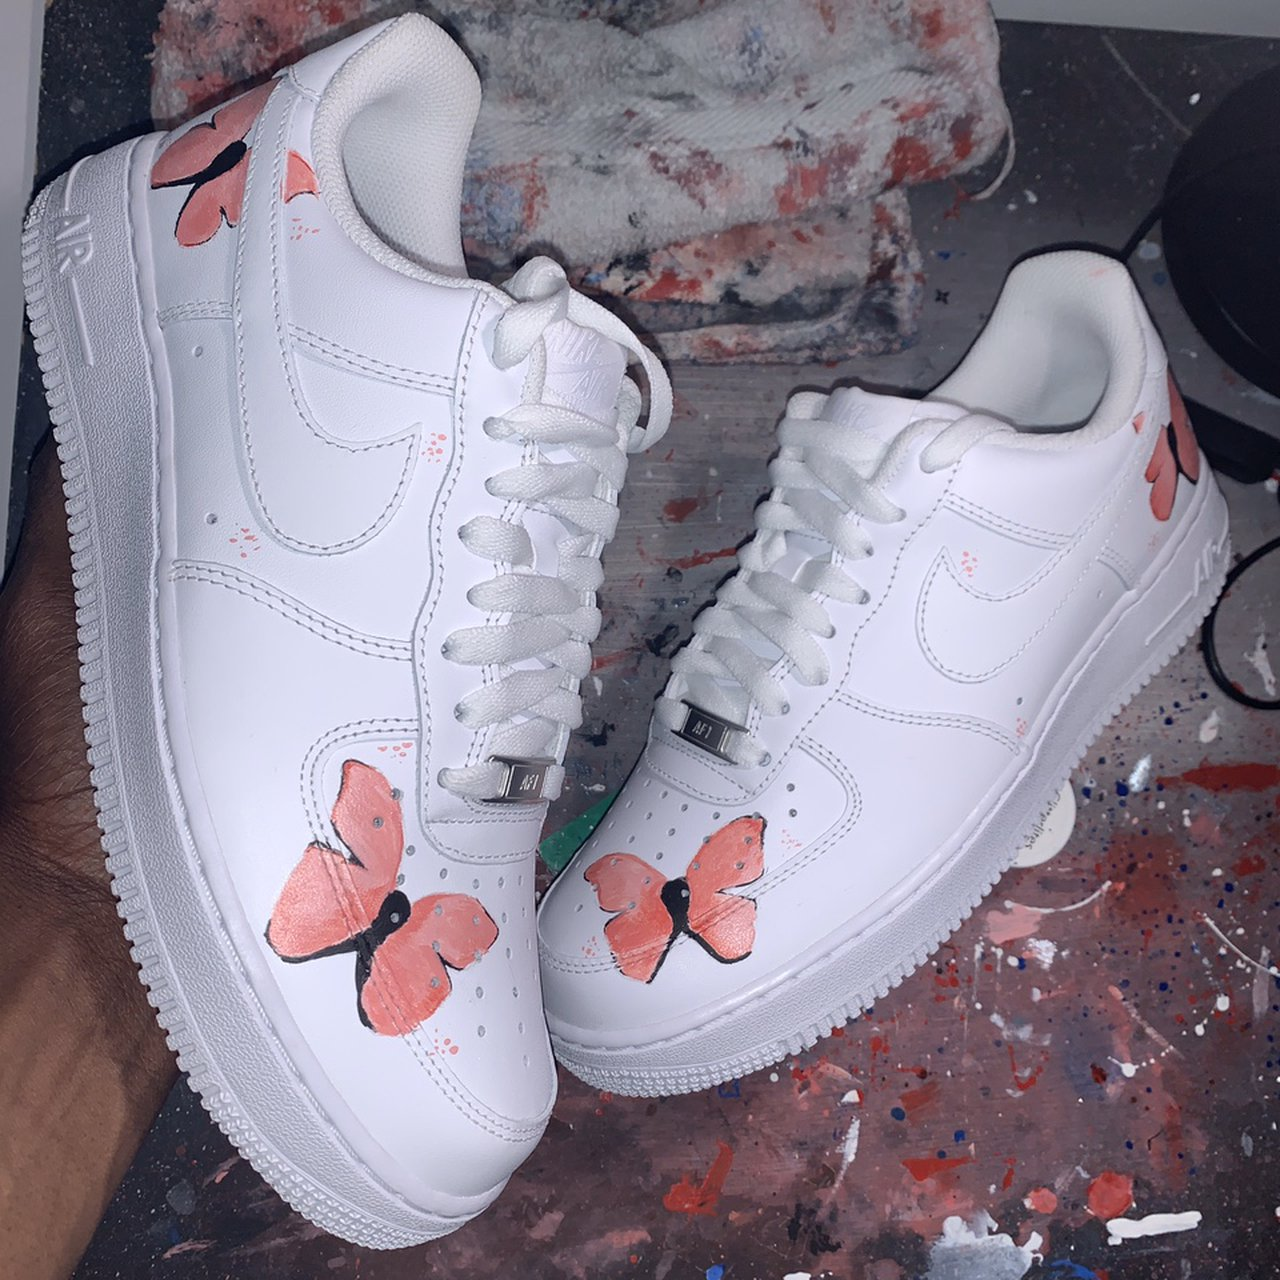 lil skies air force ones butterfly